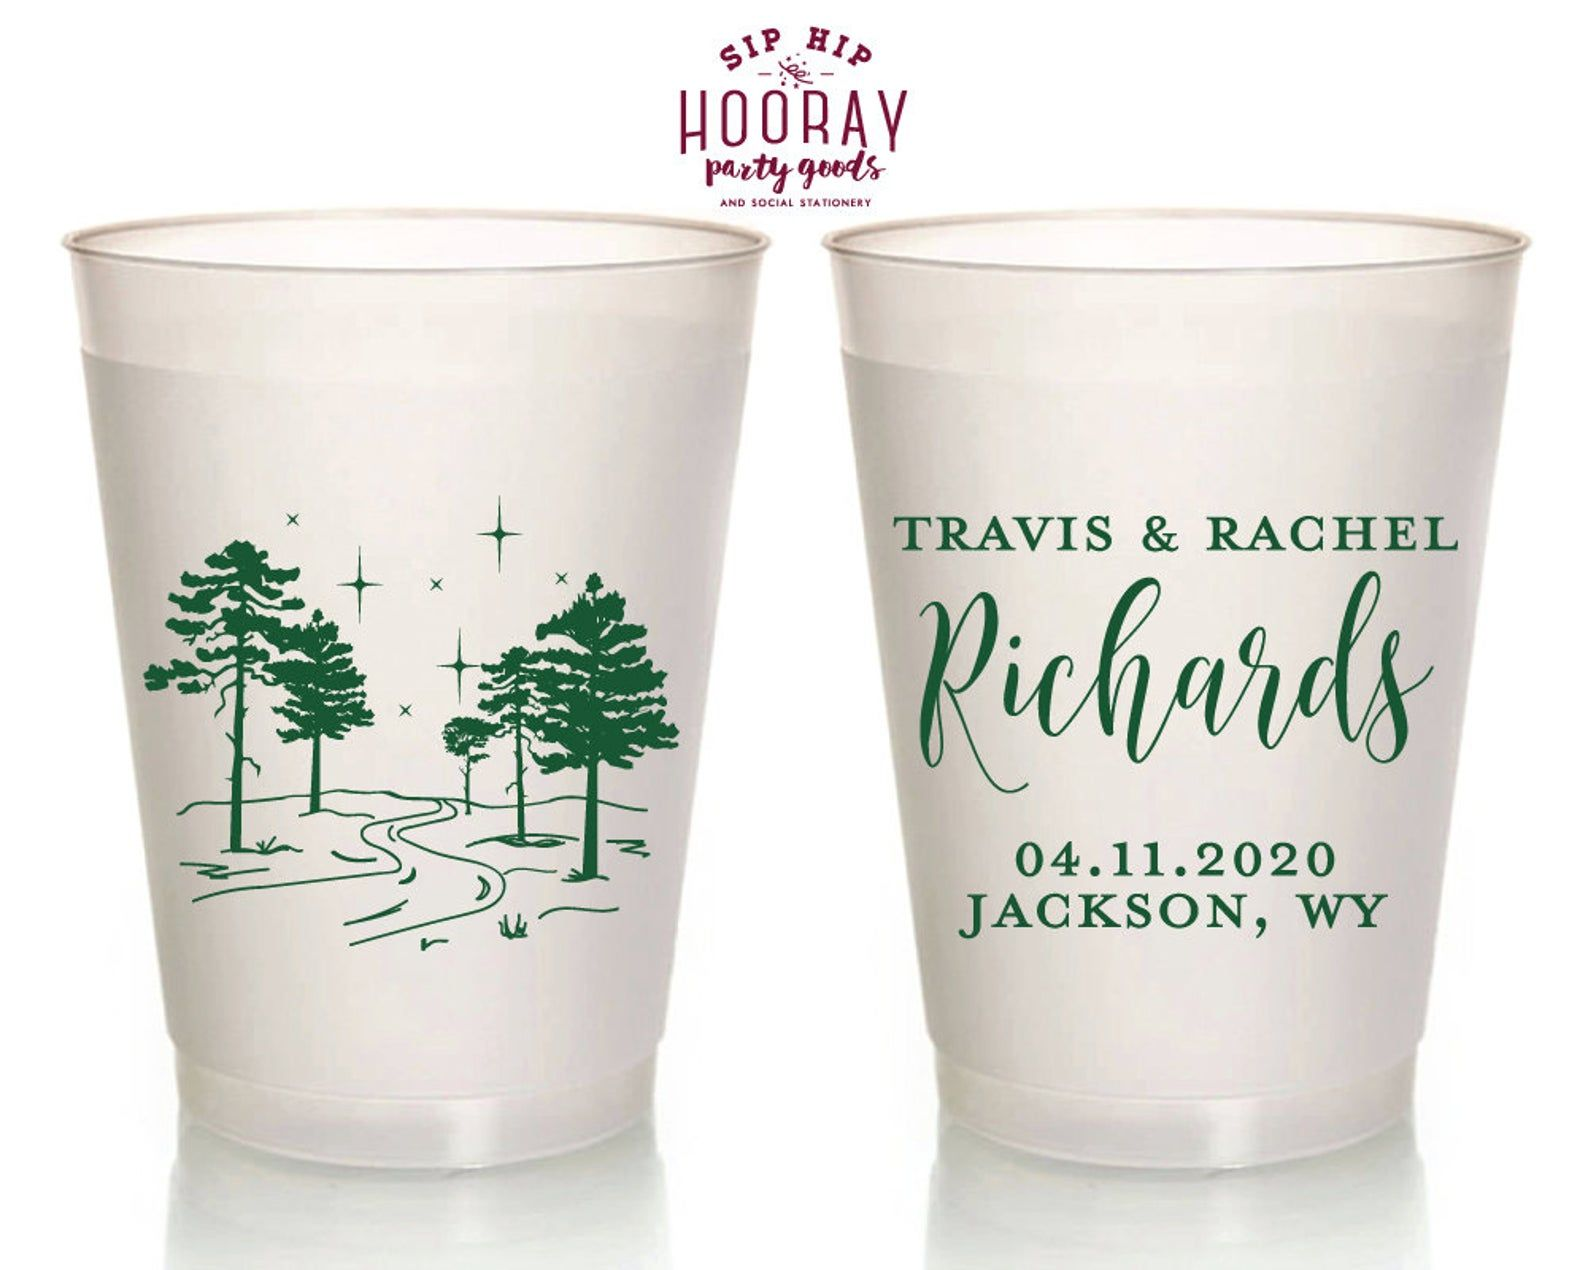 Personalized Frosted Wedding Cups Wedding Favor Cup Reusable Etsy In 2020 Cup Favors Wedding Frosted Wedding Cups Wedding Cups